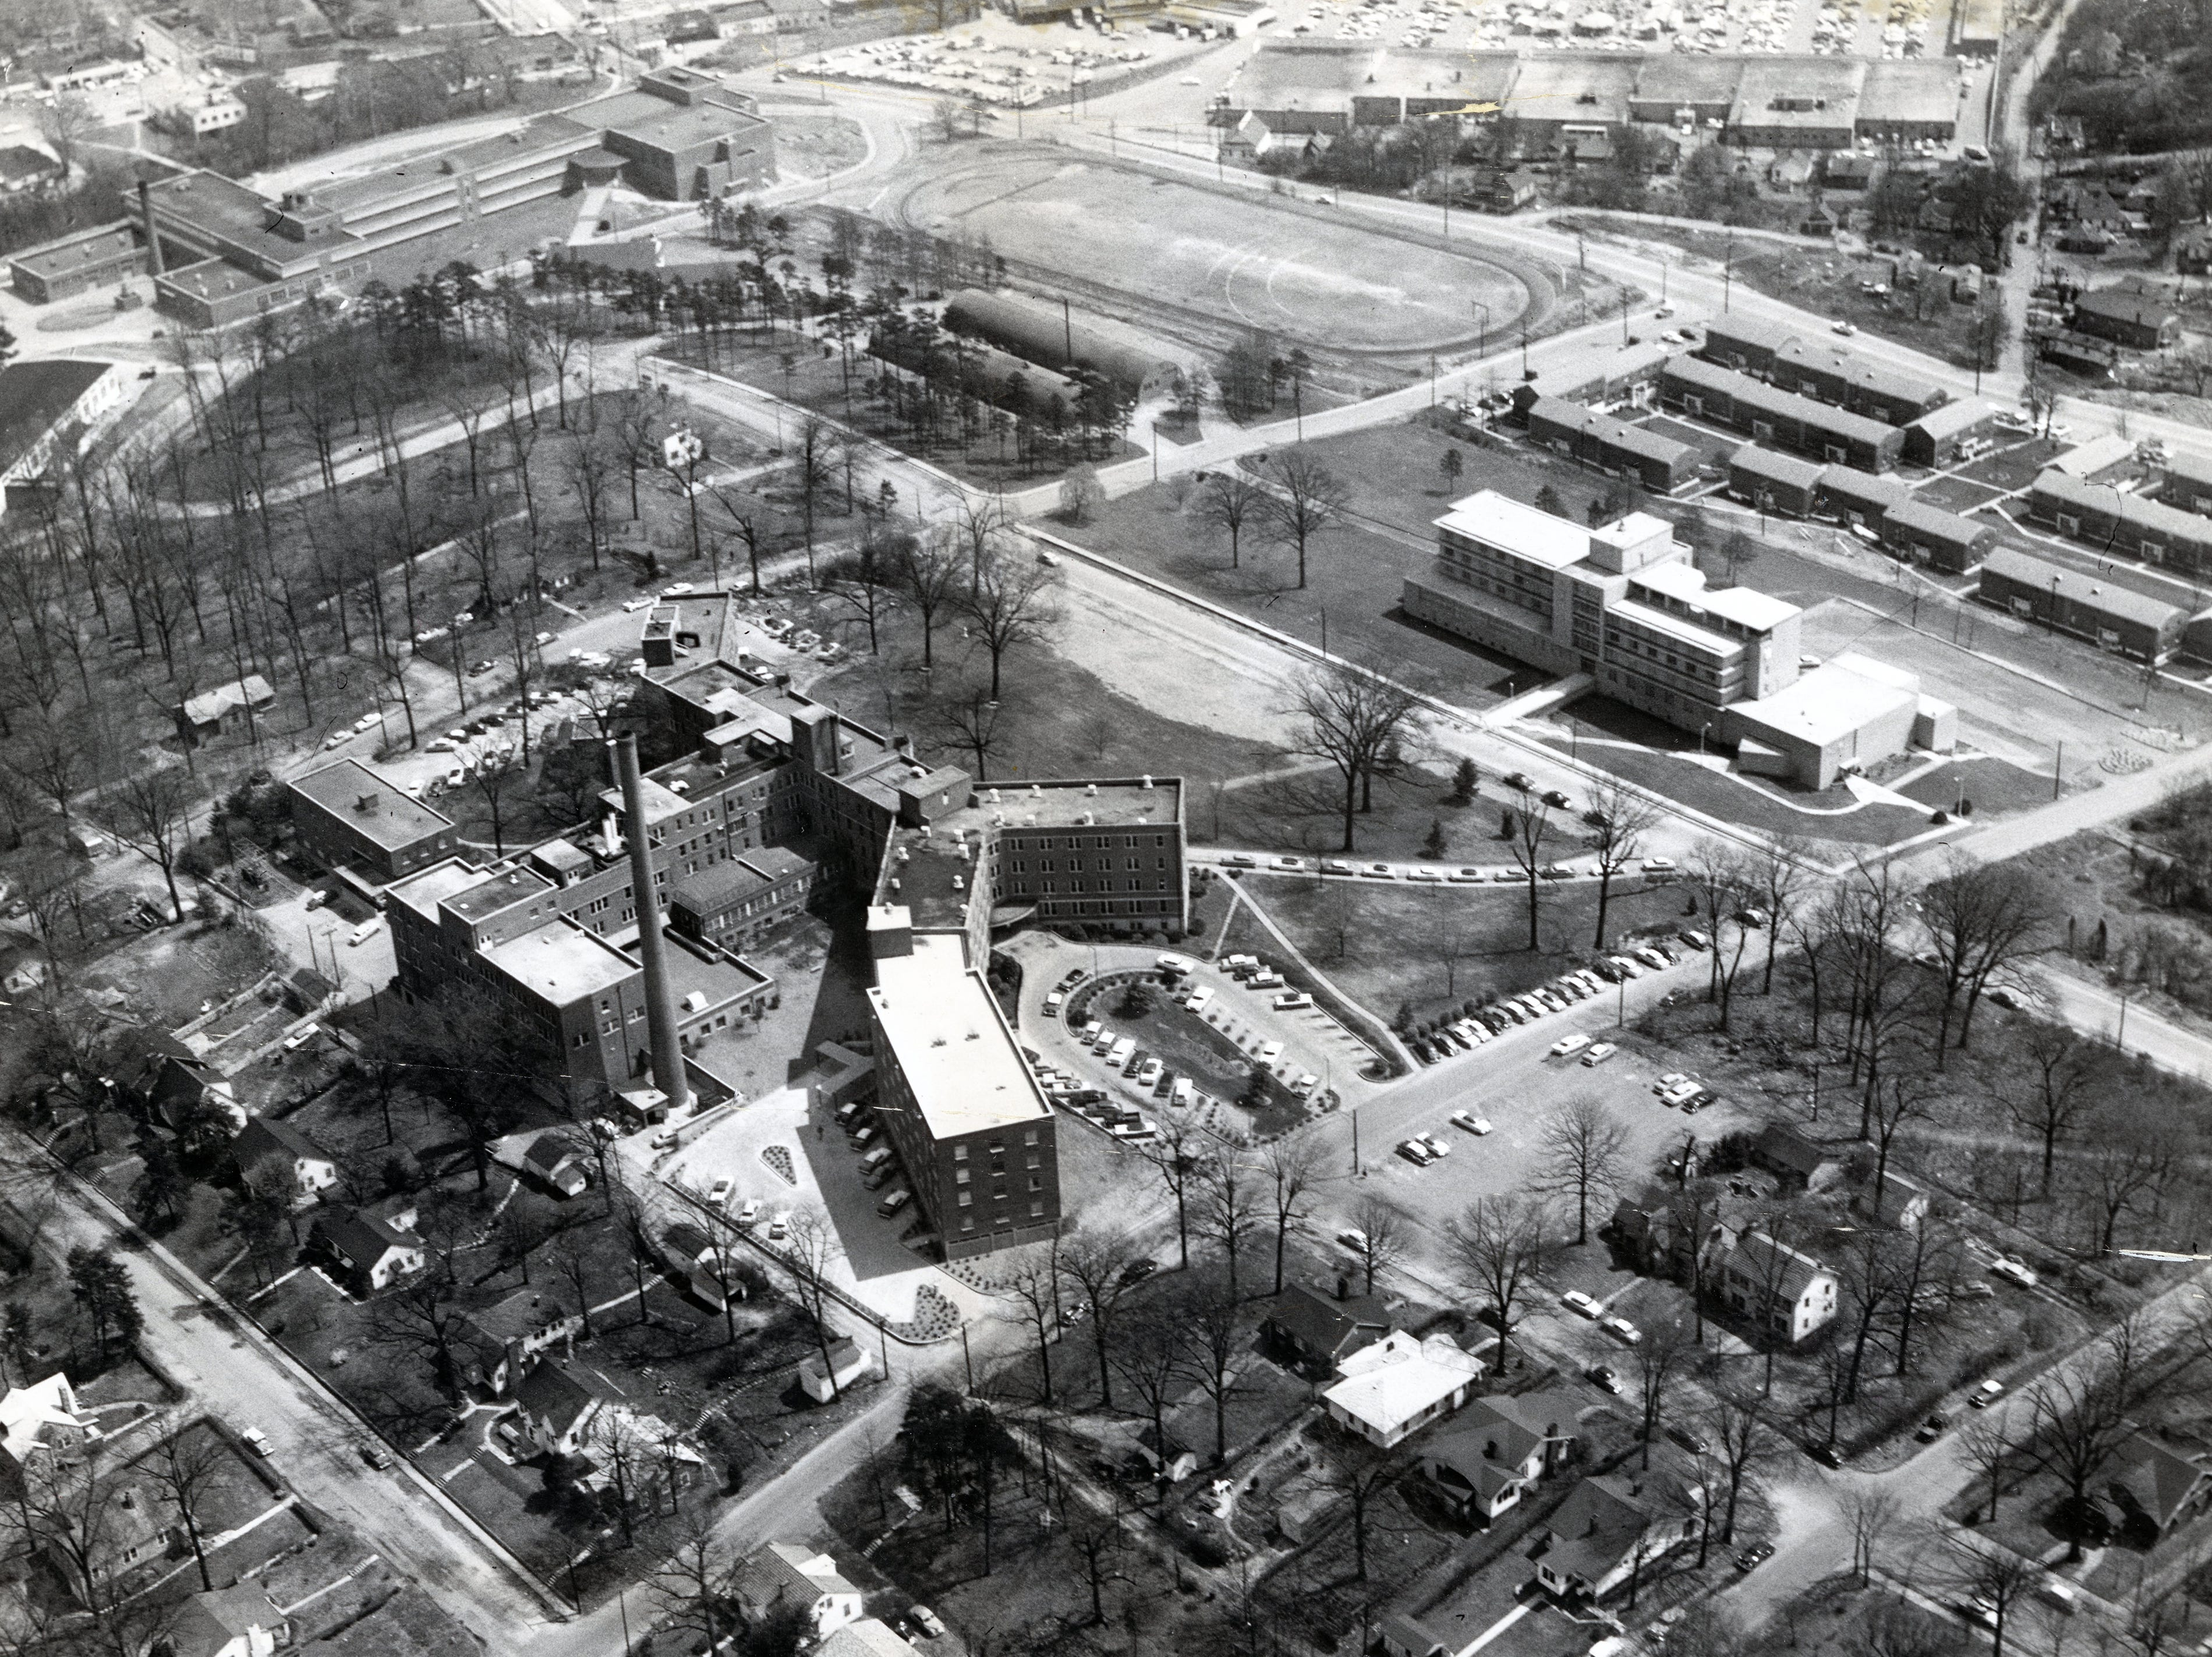 St. Mary's Hospital in April 1958.